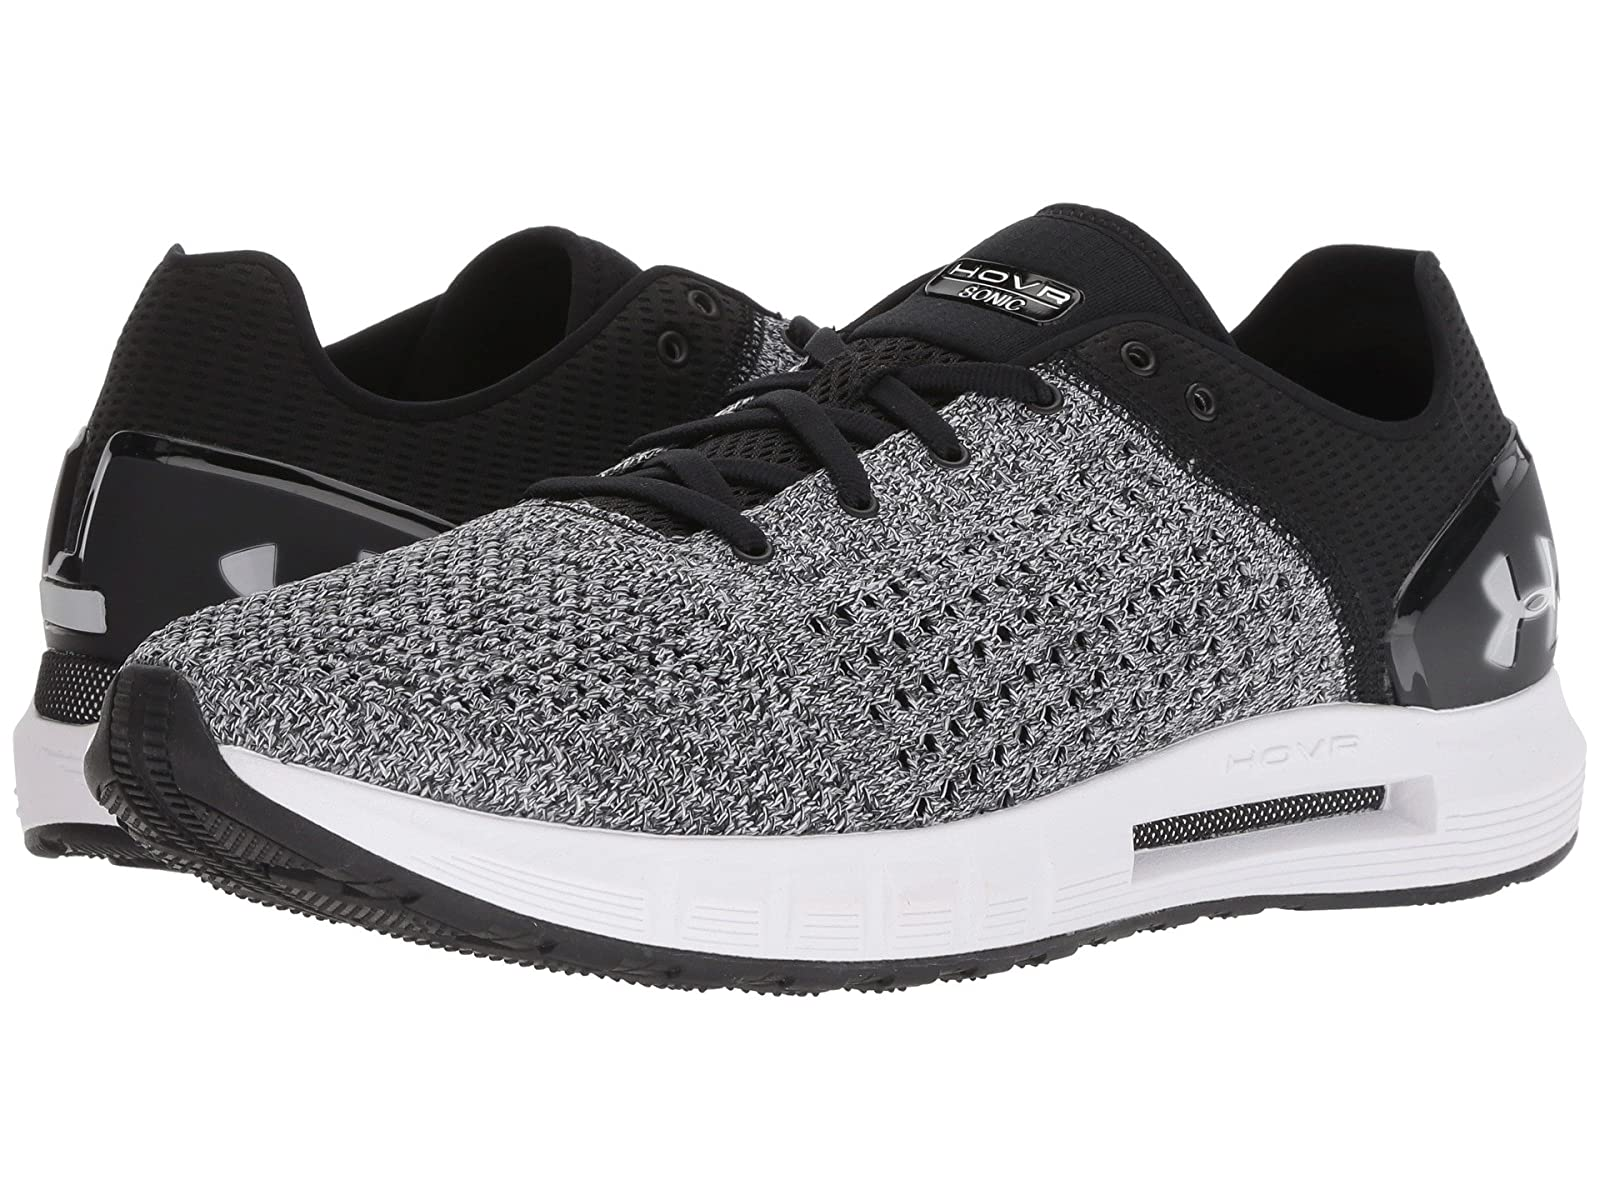 Under Armour UA HOVR SonicAtmospheric grades have affordable shoes